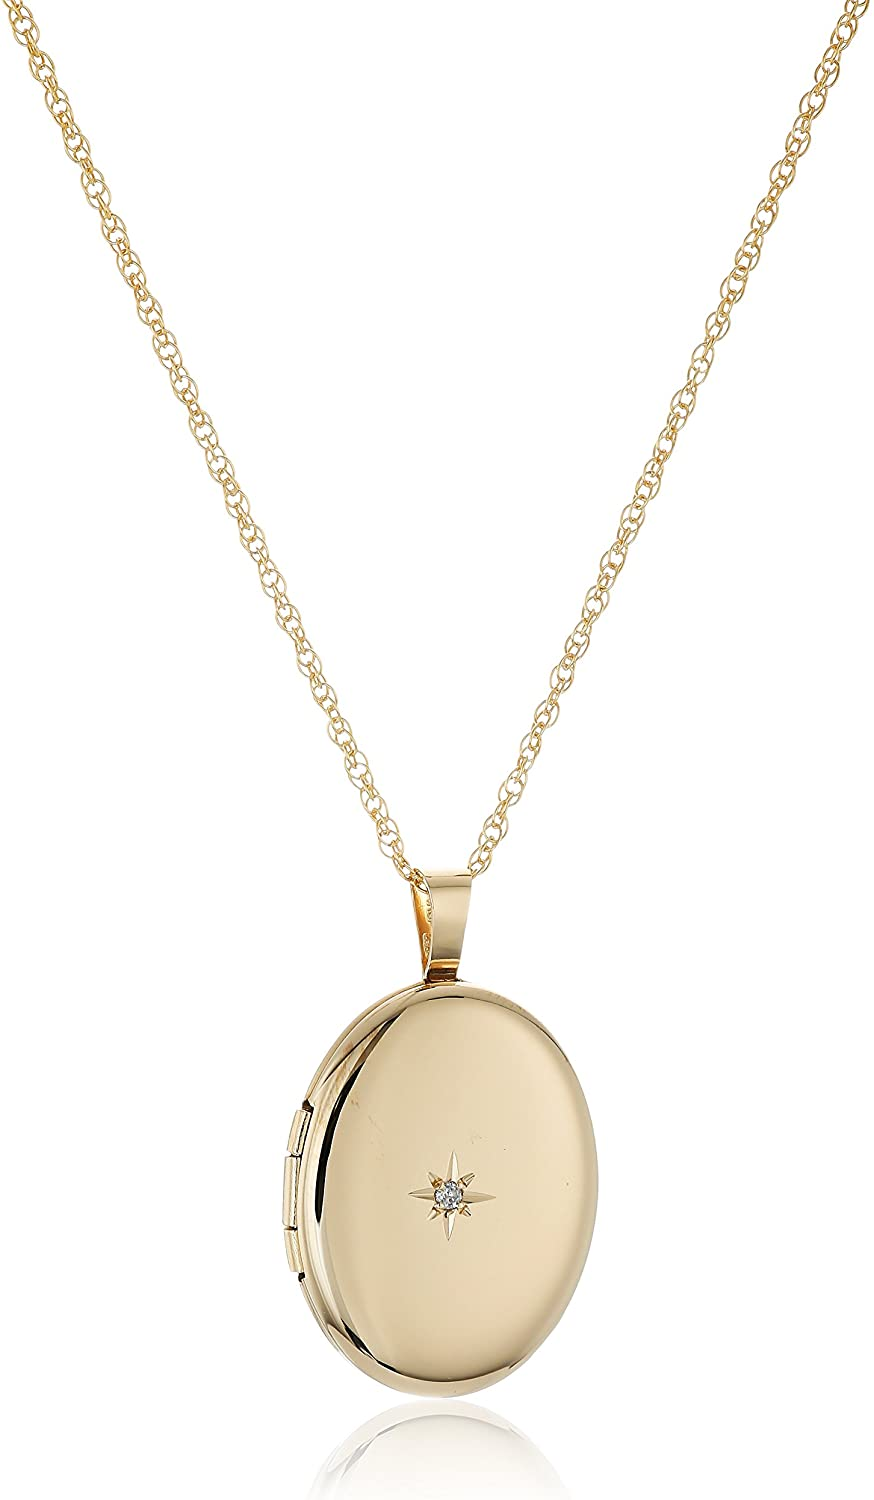 14k Yellow Gold-Filled Oval Locket with Diamond-Accent, 20